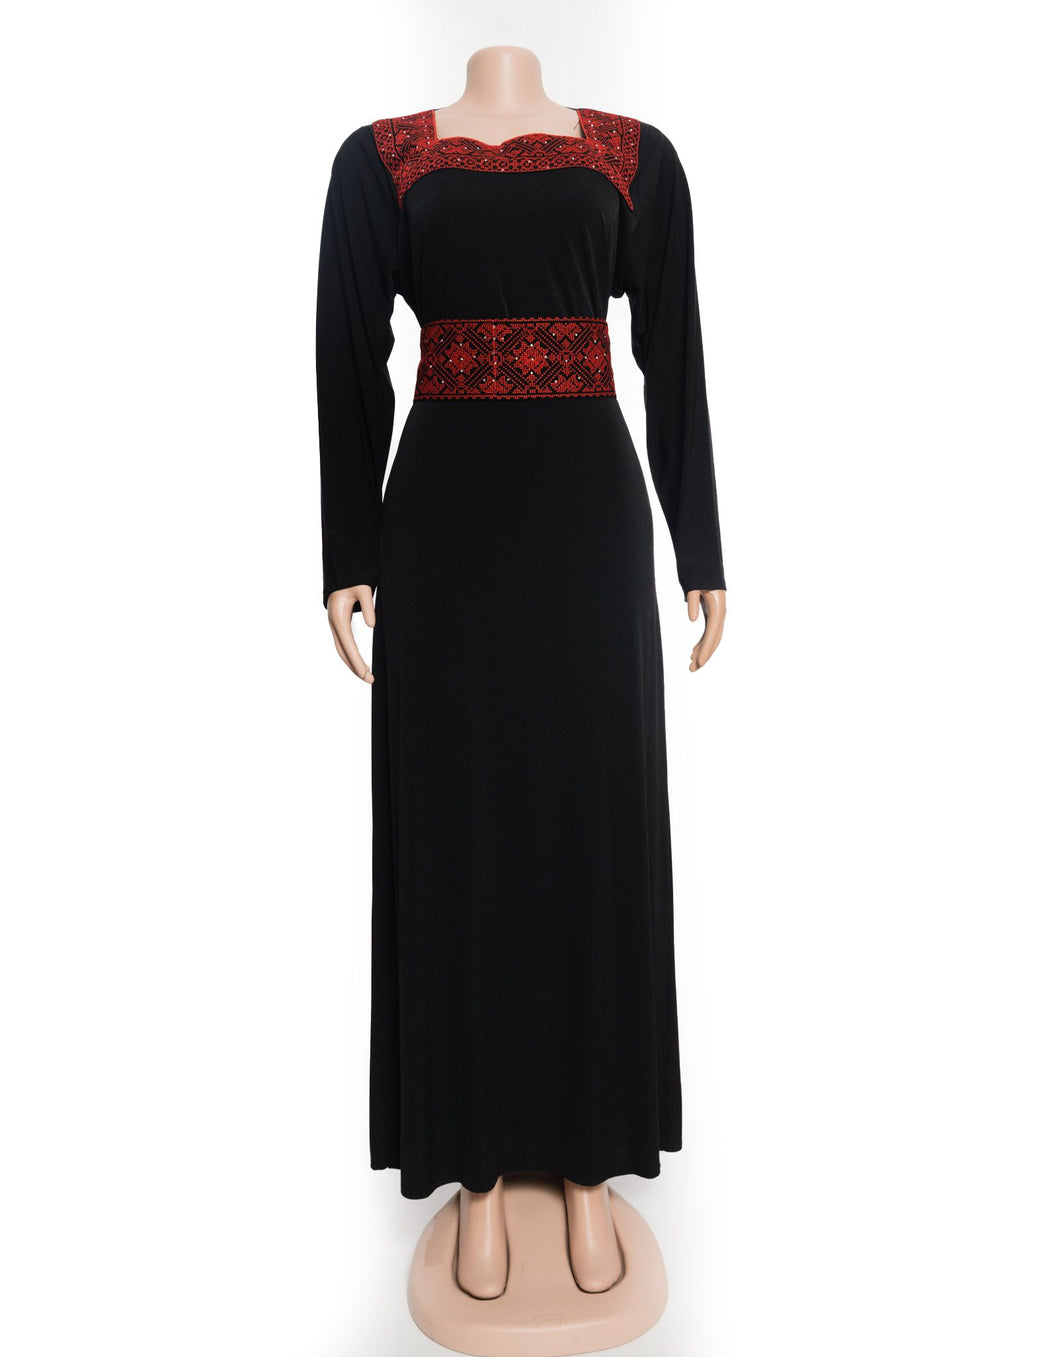 Stylish embroidered black lining dress with red elegant red embroidery